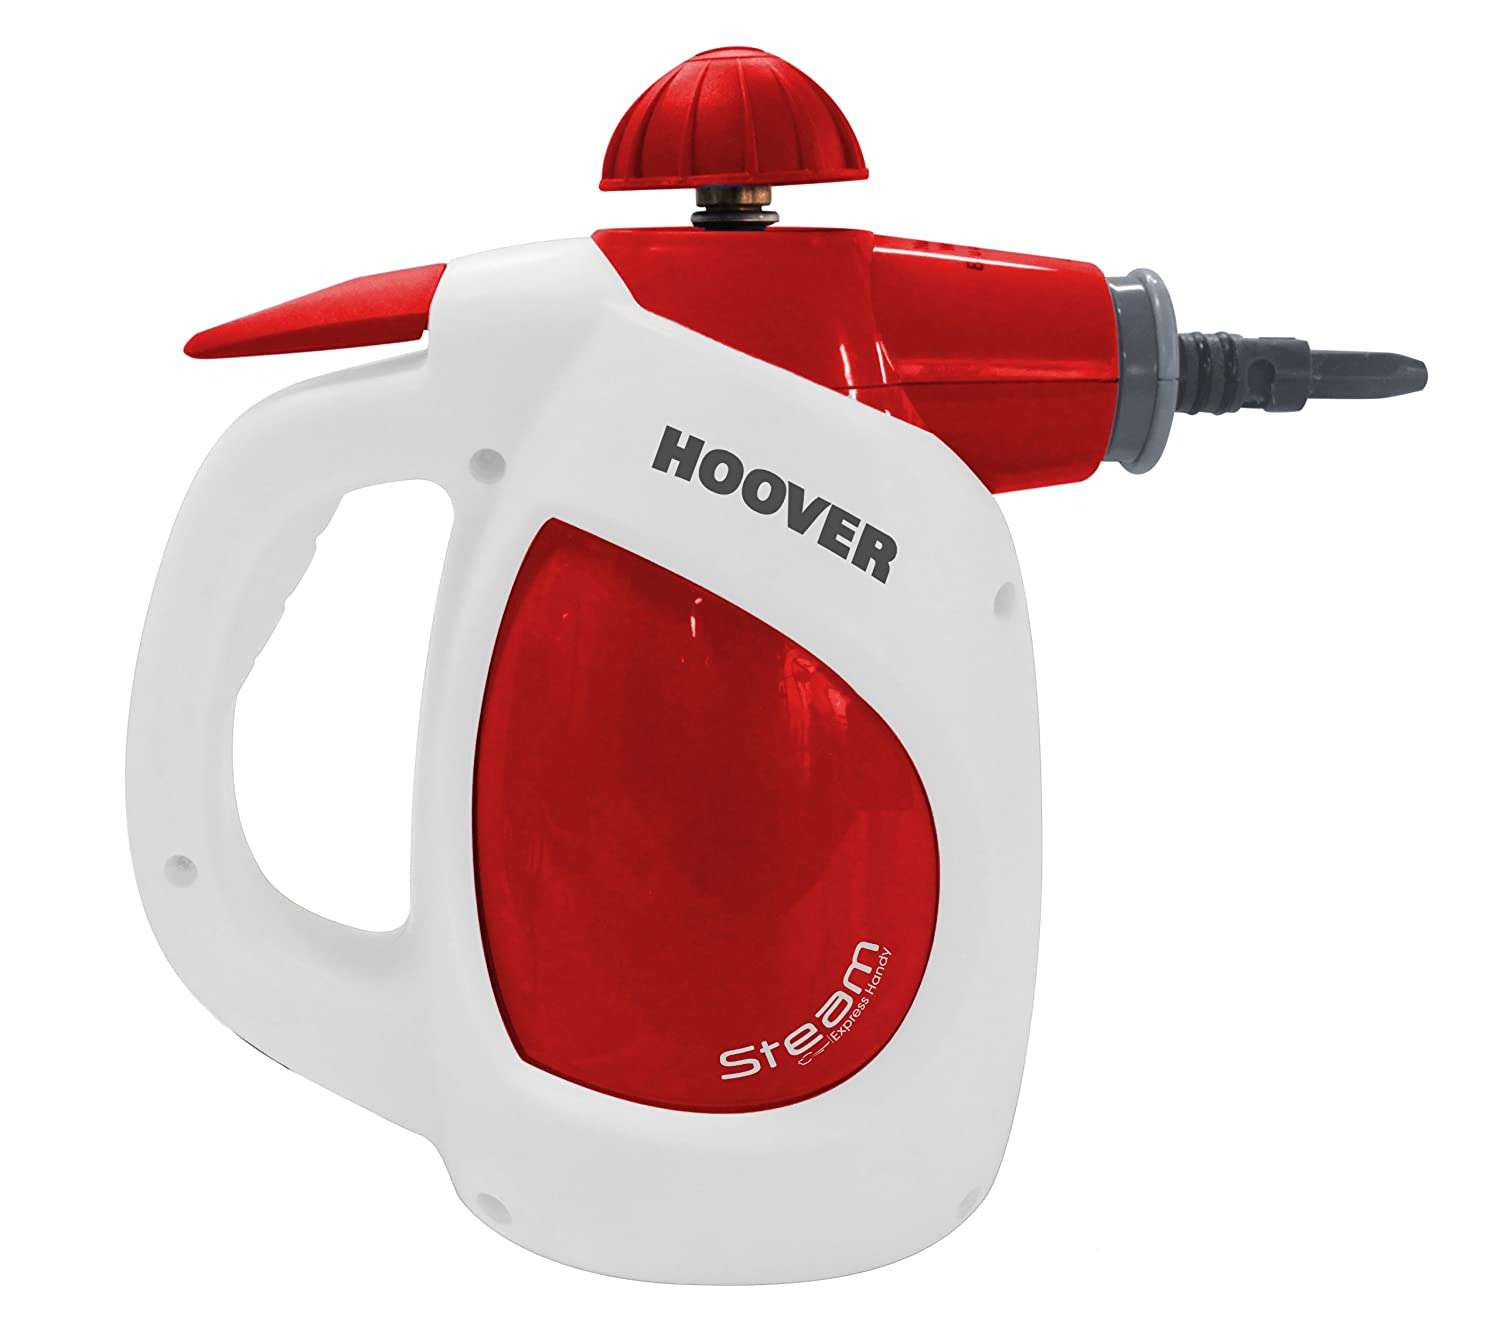 Hoover SSNH1000 Steam Express Handheld Steam Cleaner